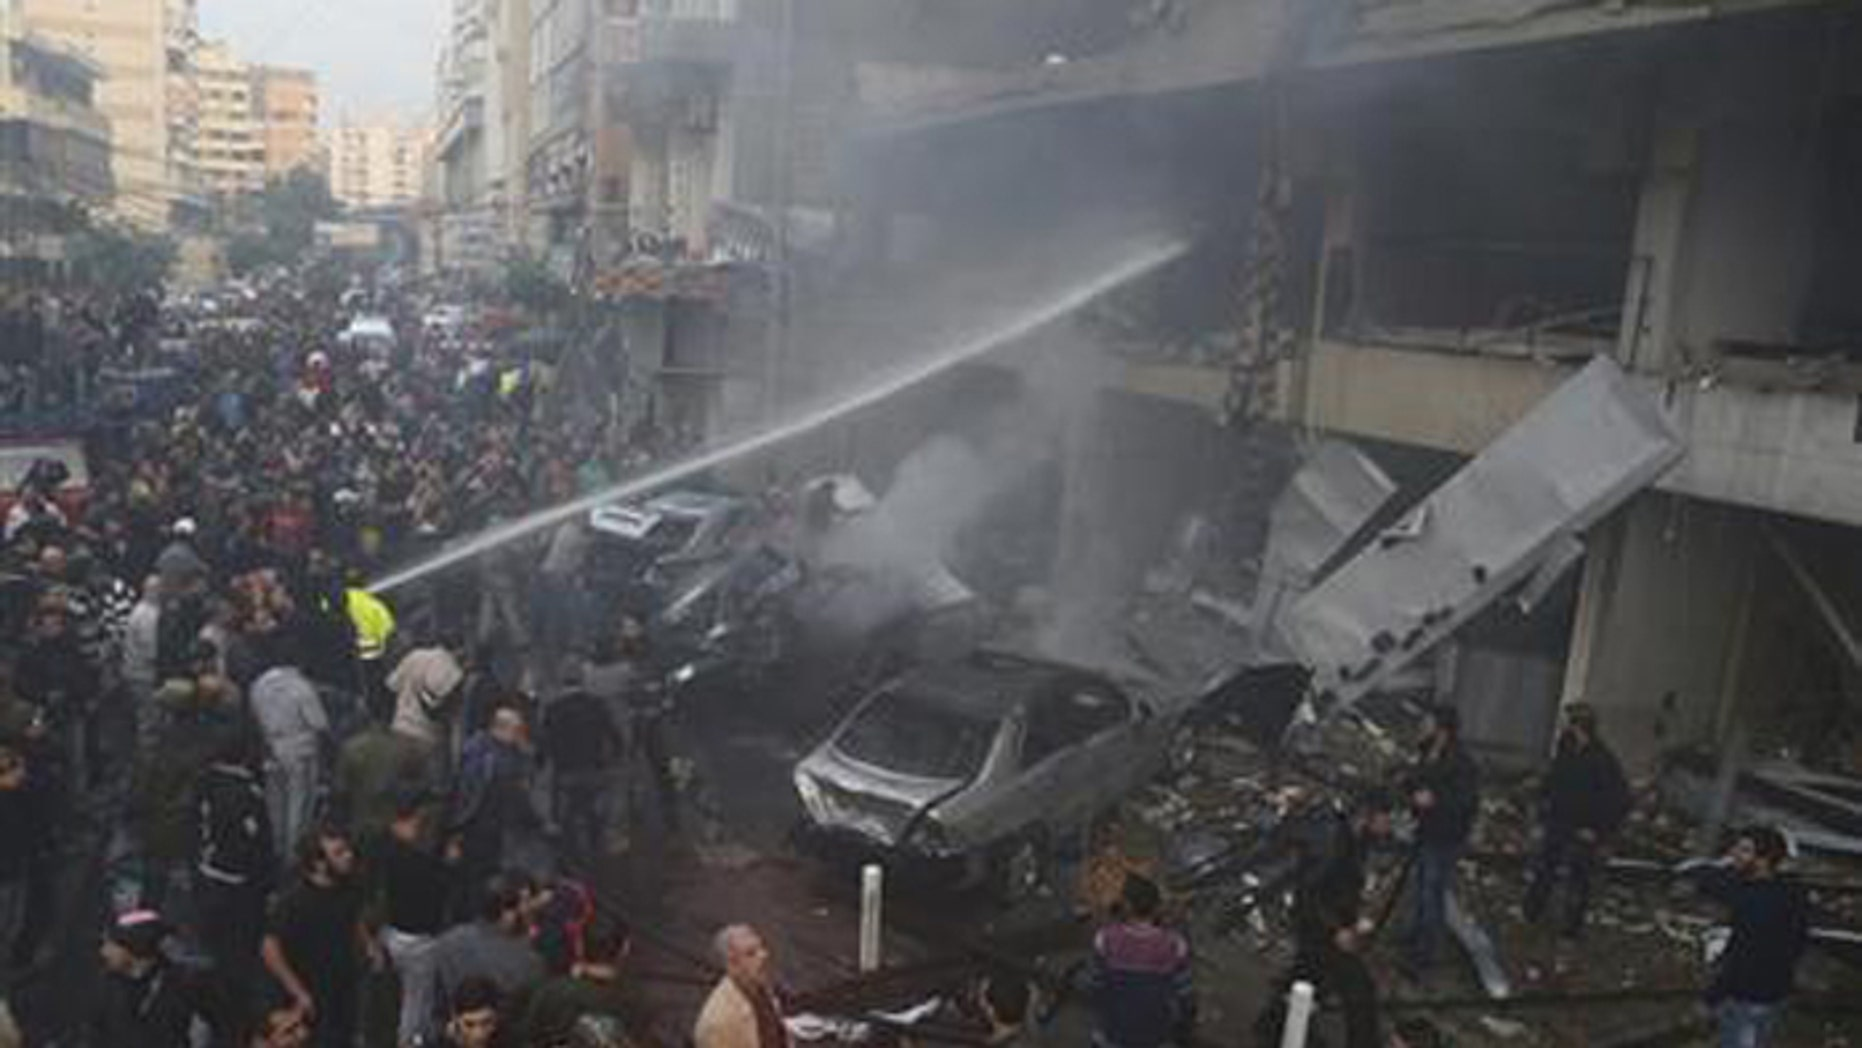 People gather as firefighters attempt to extinguish a fire at the site of an explosion in Beirut's southern suburbs, Jan. 2, 2014. (Reuters)